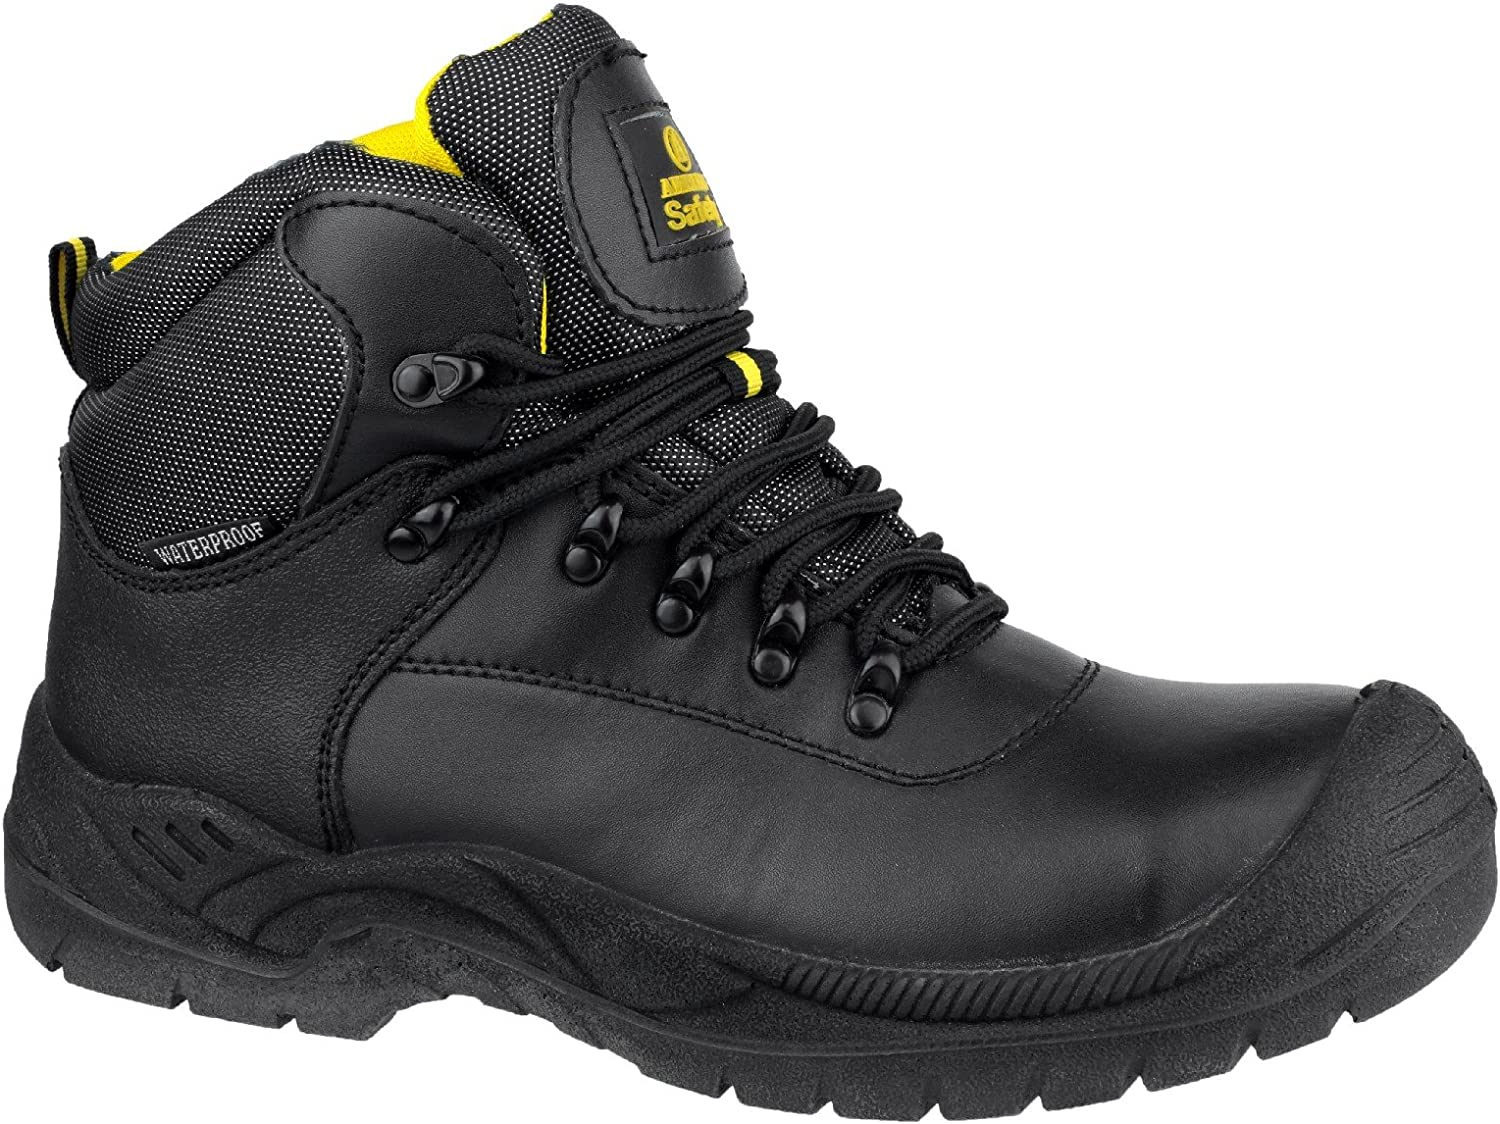 Amblers Safety FS220 W P Safety Boots